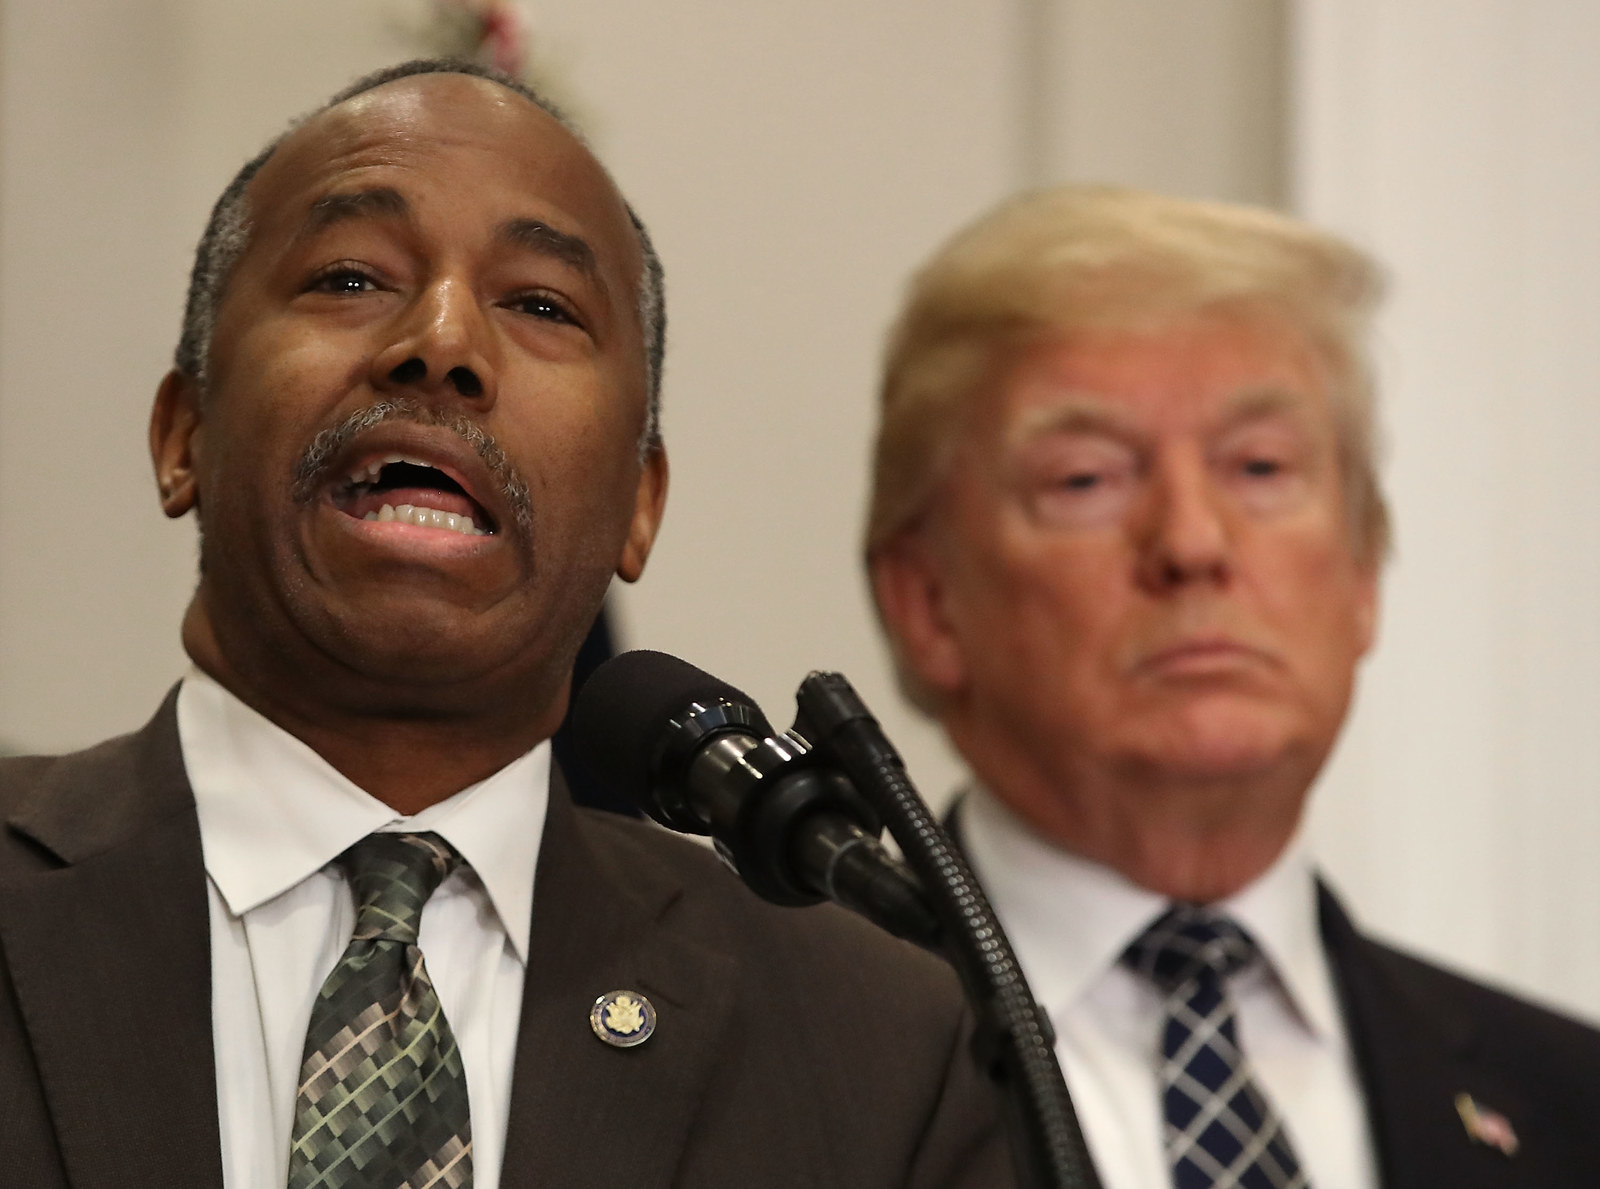 Ben Carson Wants To Evict Families With Undocumented Immigrants From Public Housing